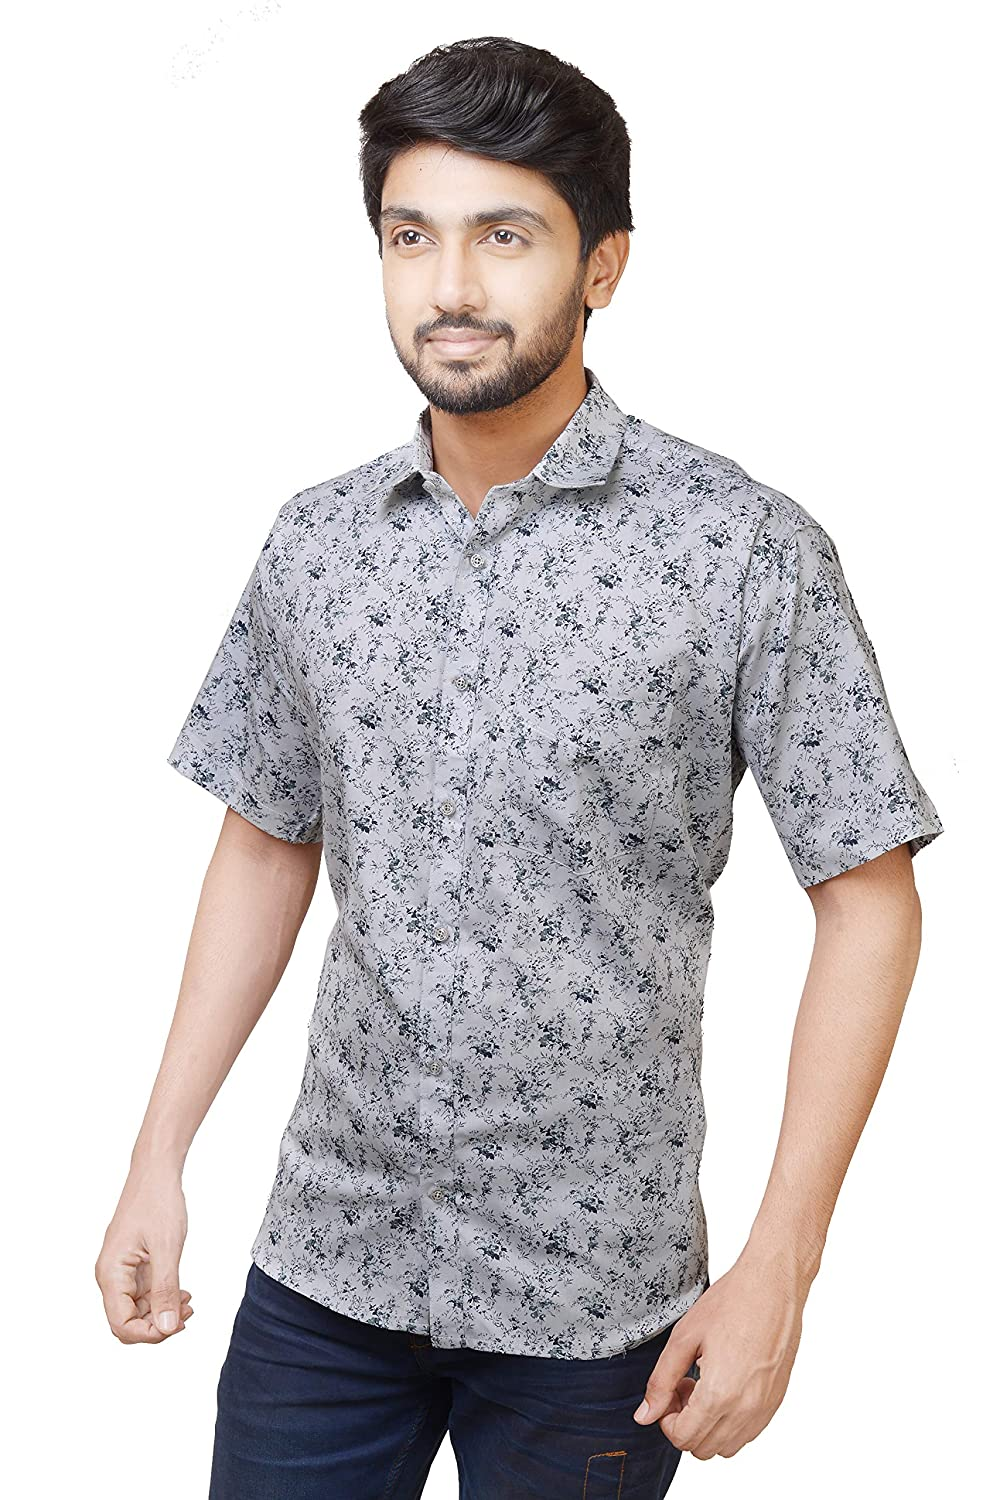 f2c09d16 Relish Shirts Casual Half Sleeve Printed Shirt for Men  |Cotton|Blue,Off-White,Yellow|40,42,44|Regular Fit|Men's Casual Printed Half  Sleeve Shirt|Ditsy ...